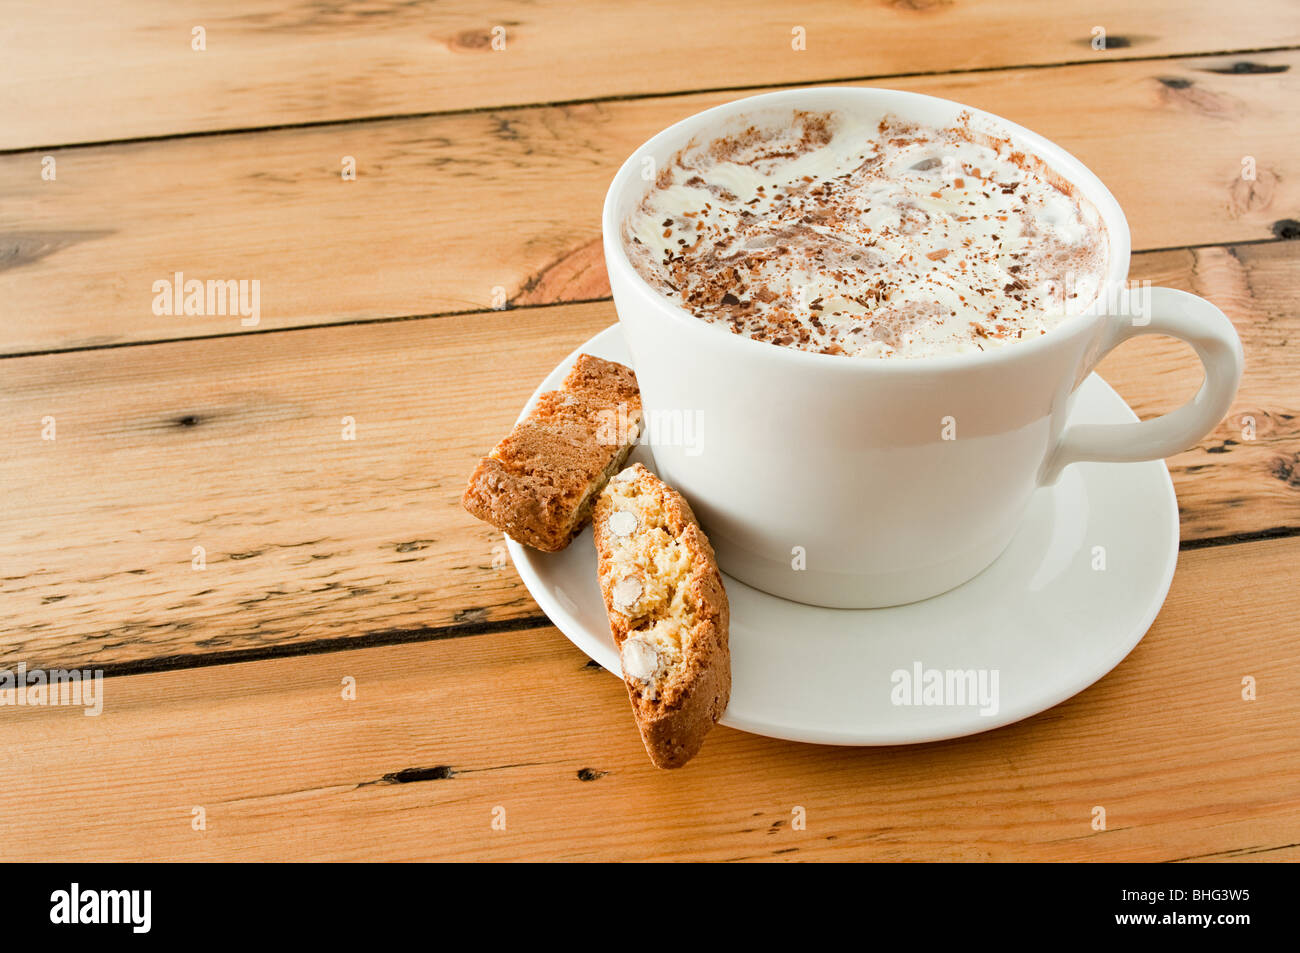 Cappuccino and biscotti - Stock Image